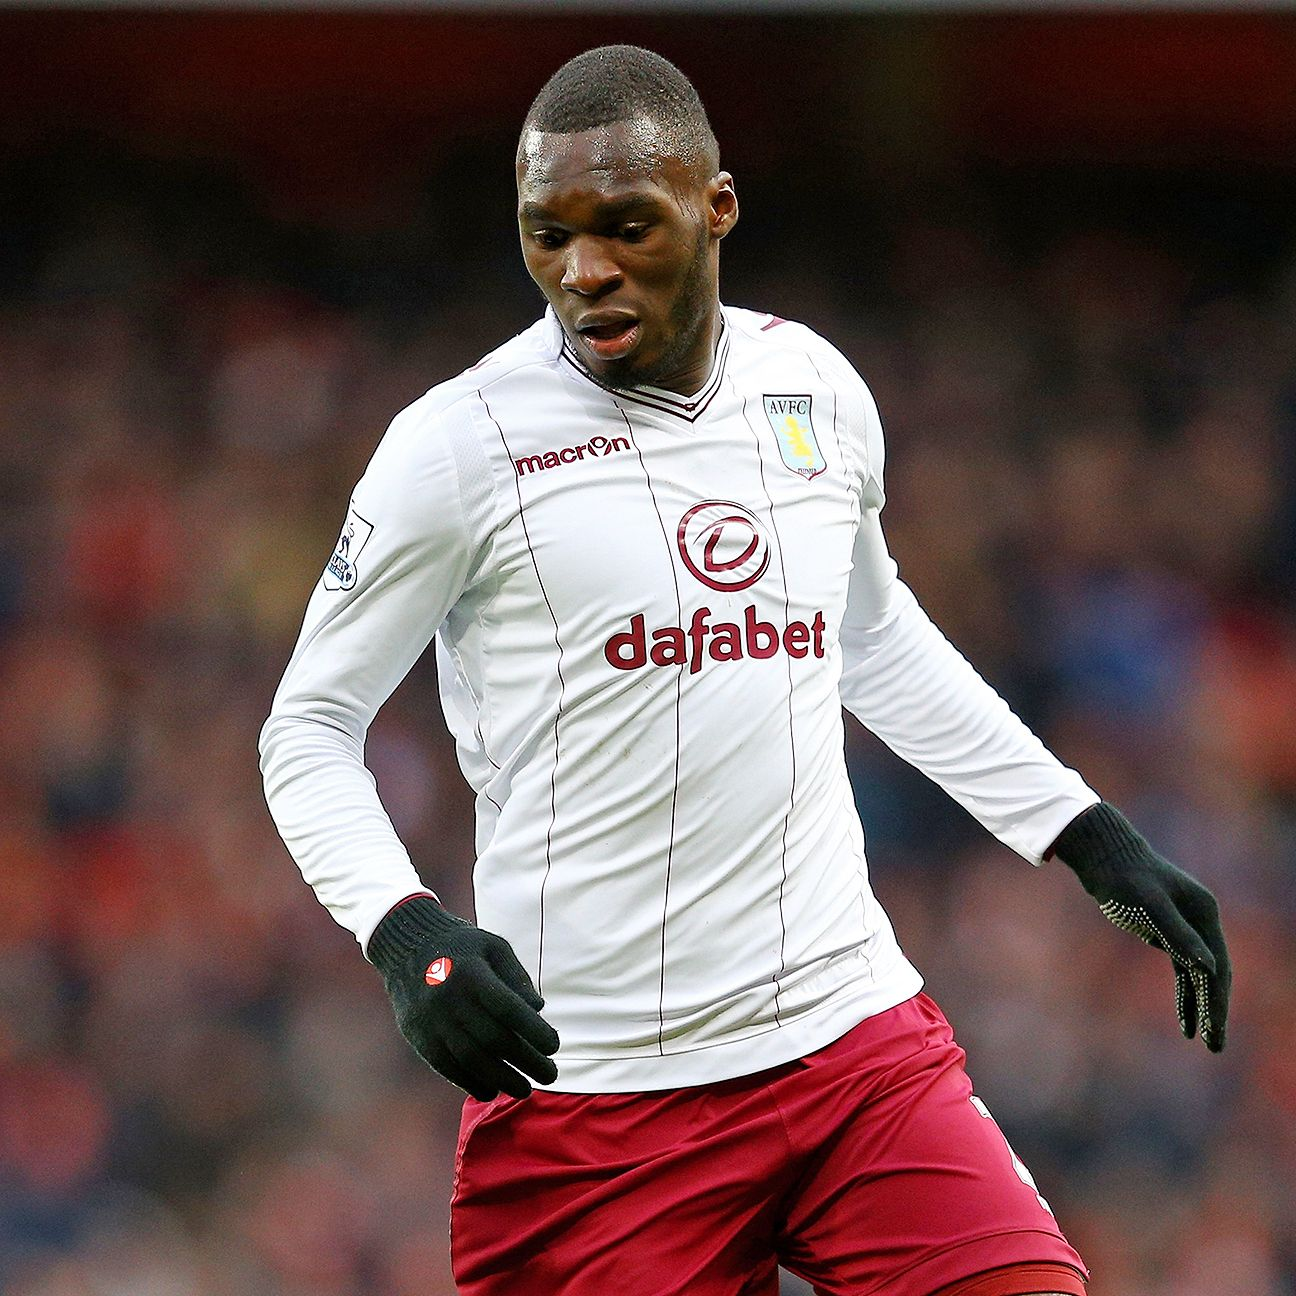 In three season at Aston Villa, Christian Benteke scored 42 Premier League goals.